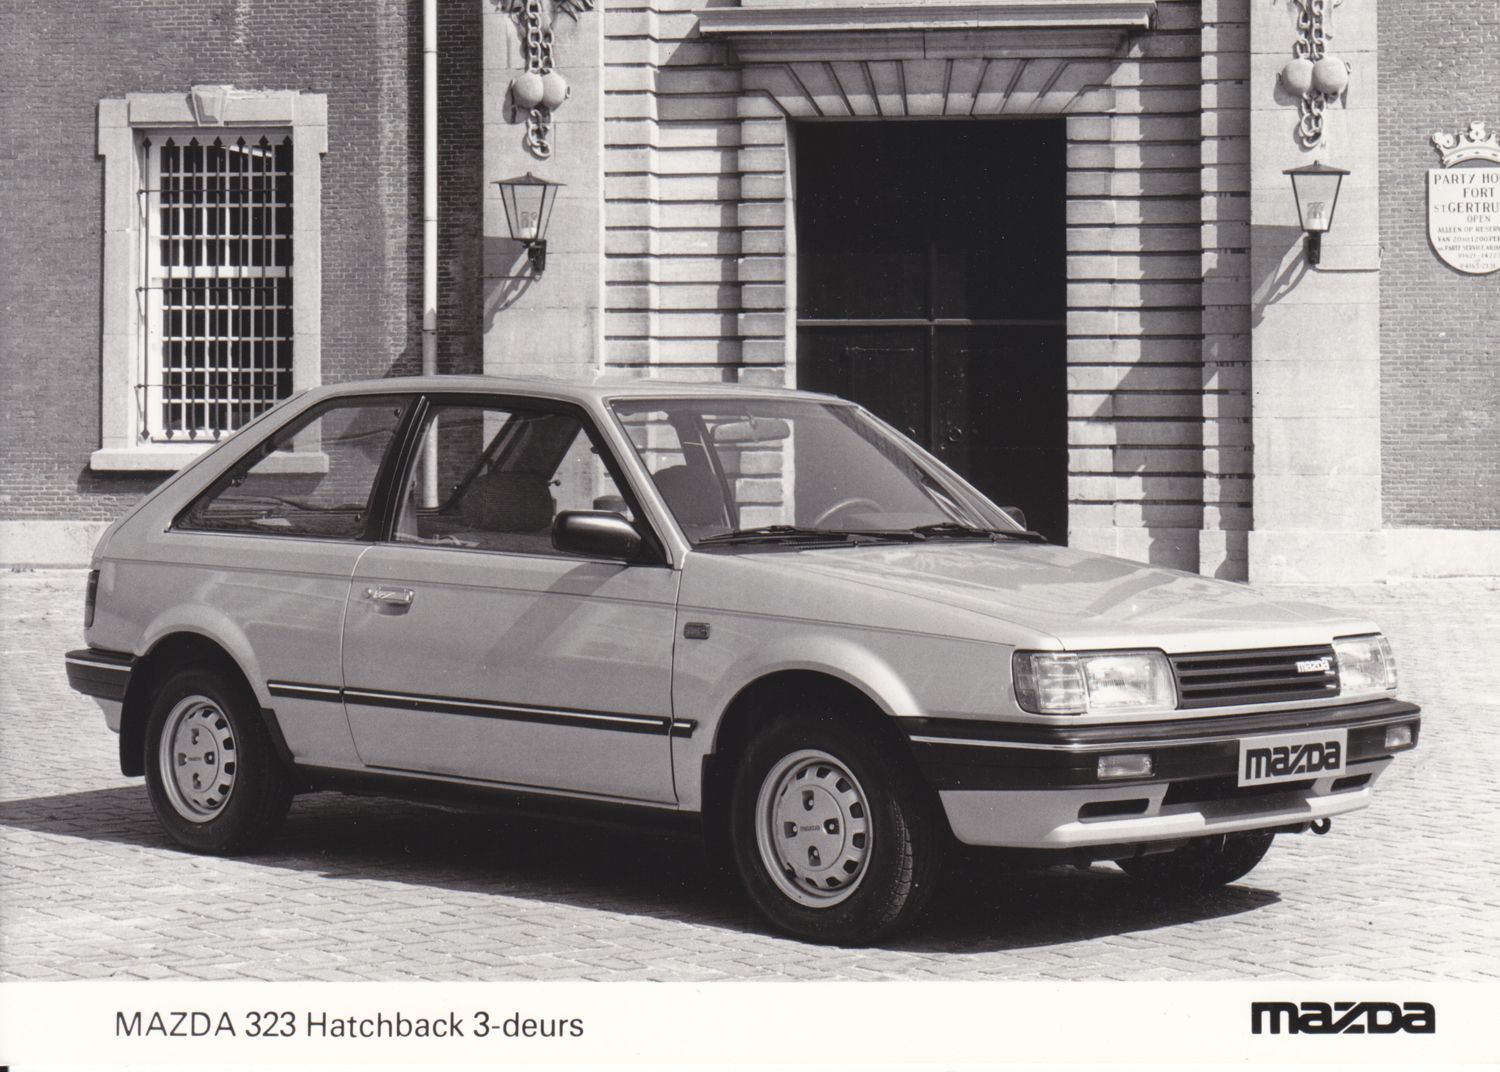 Mazda 323 Hatchback 3 Door Nl August 1985 Cars Mazda Cars